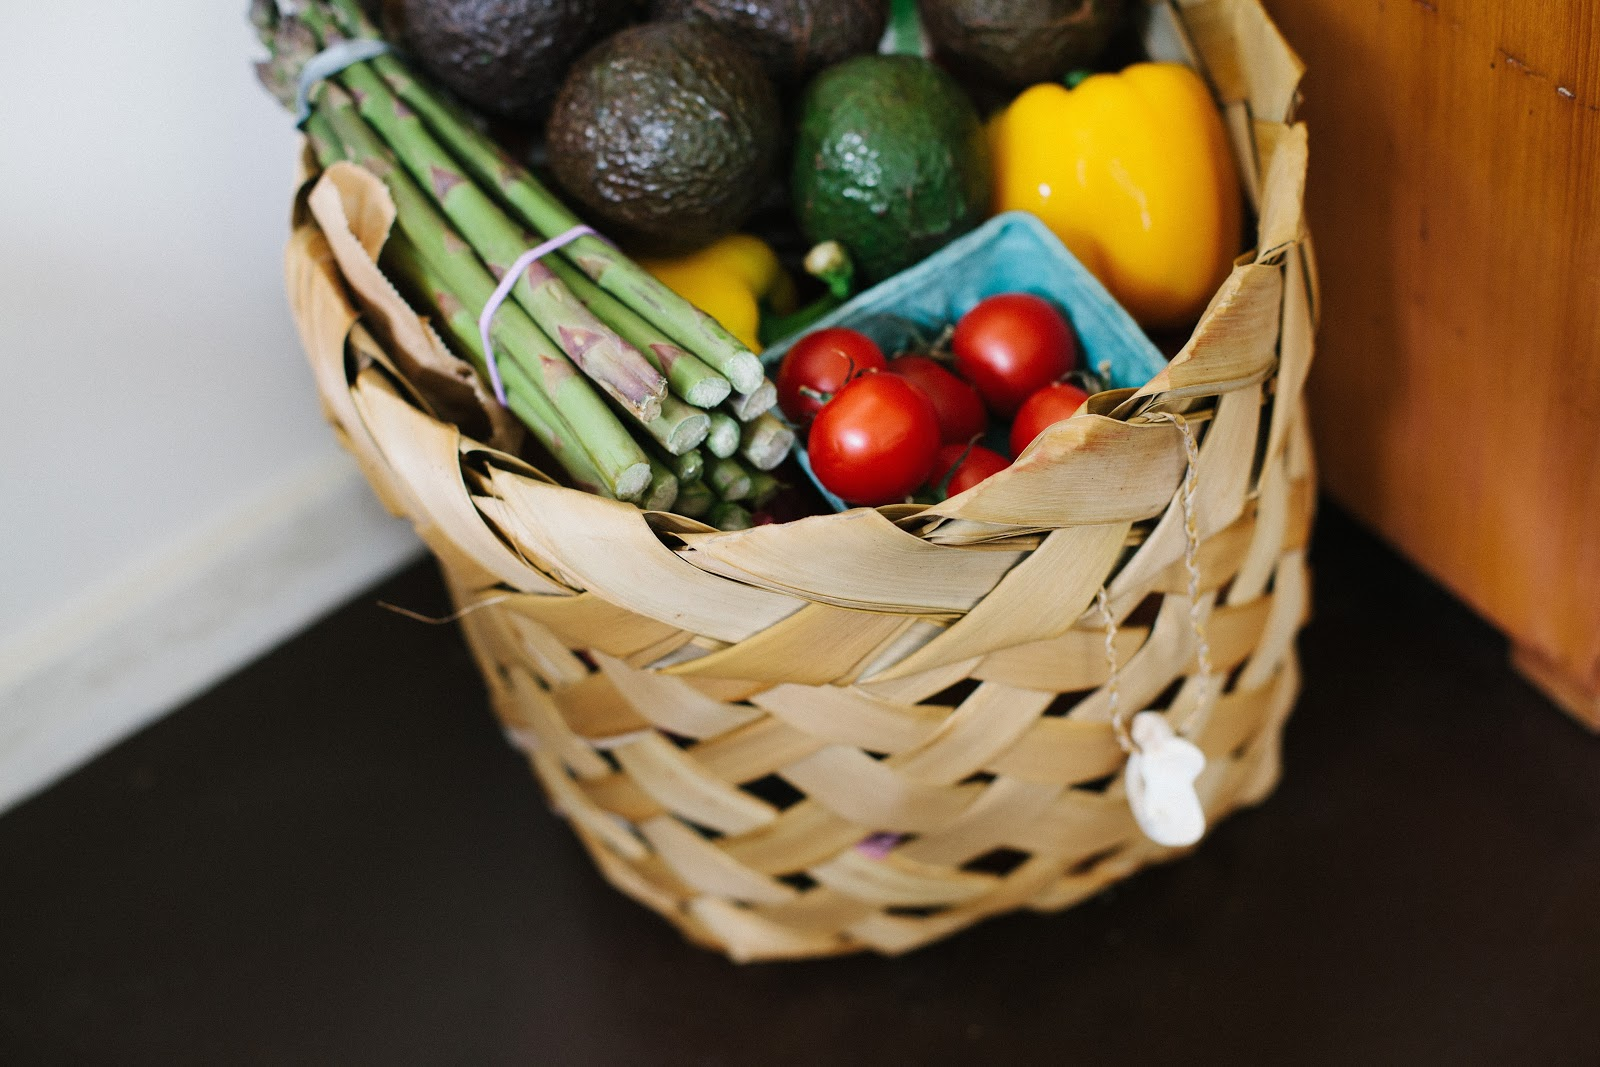 Healthy eating basics for fussy eaters | Healthy lifestyle blog